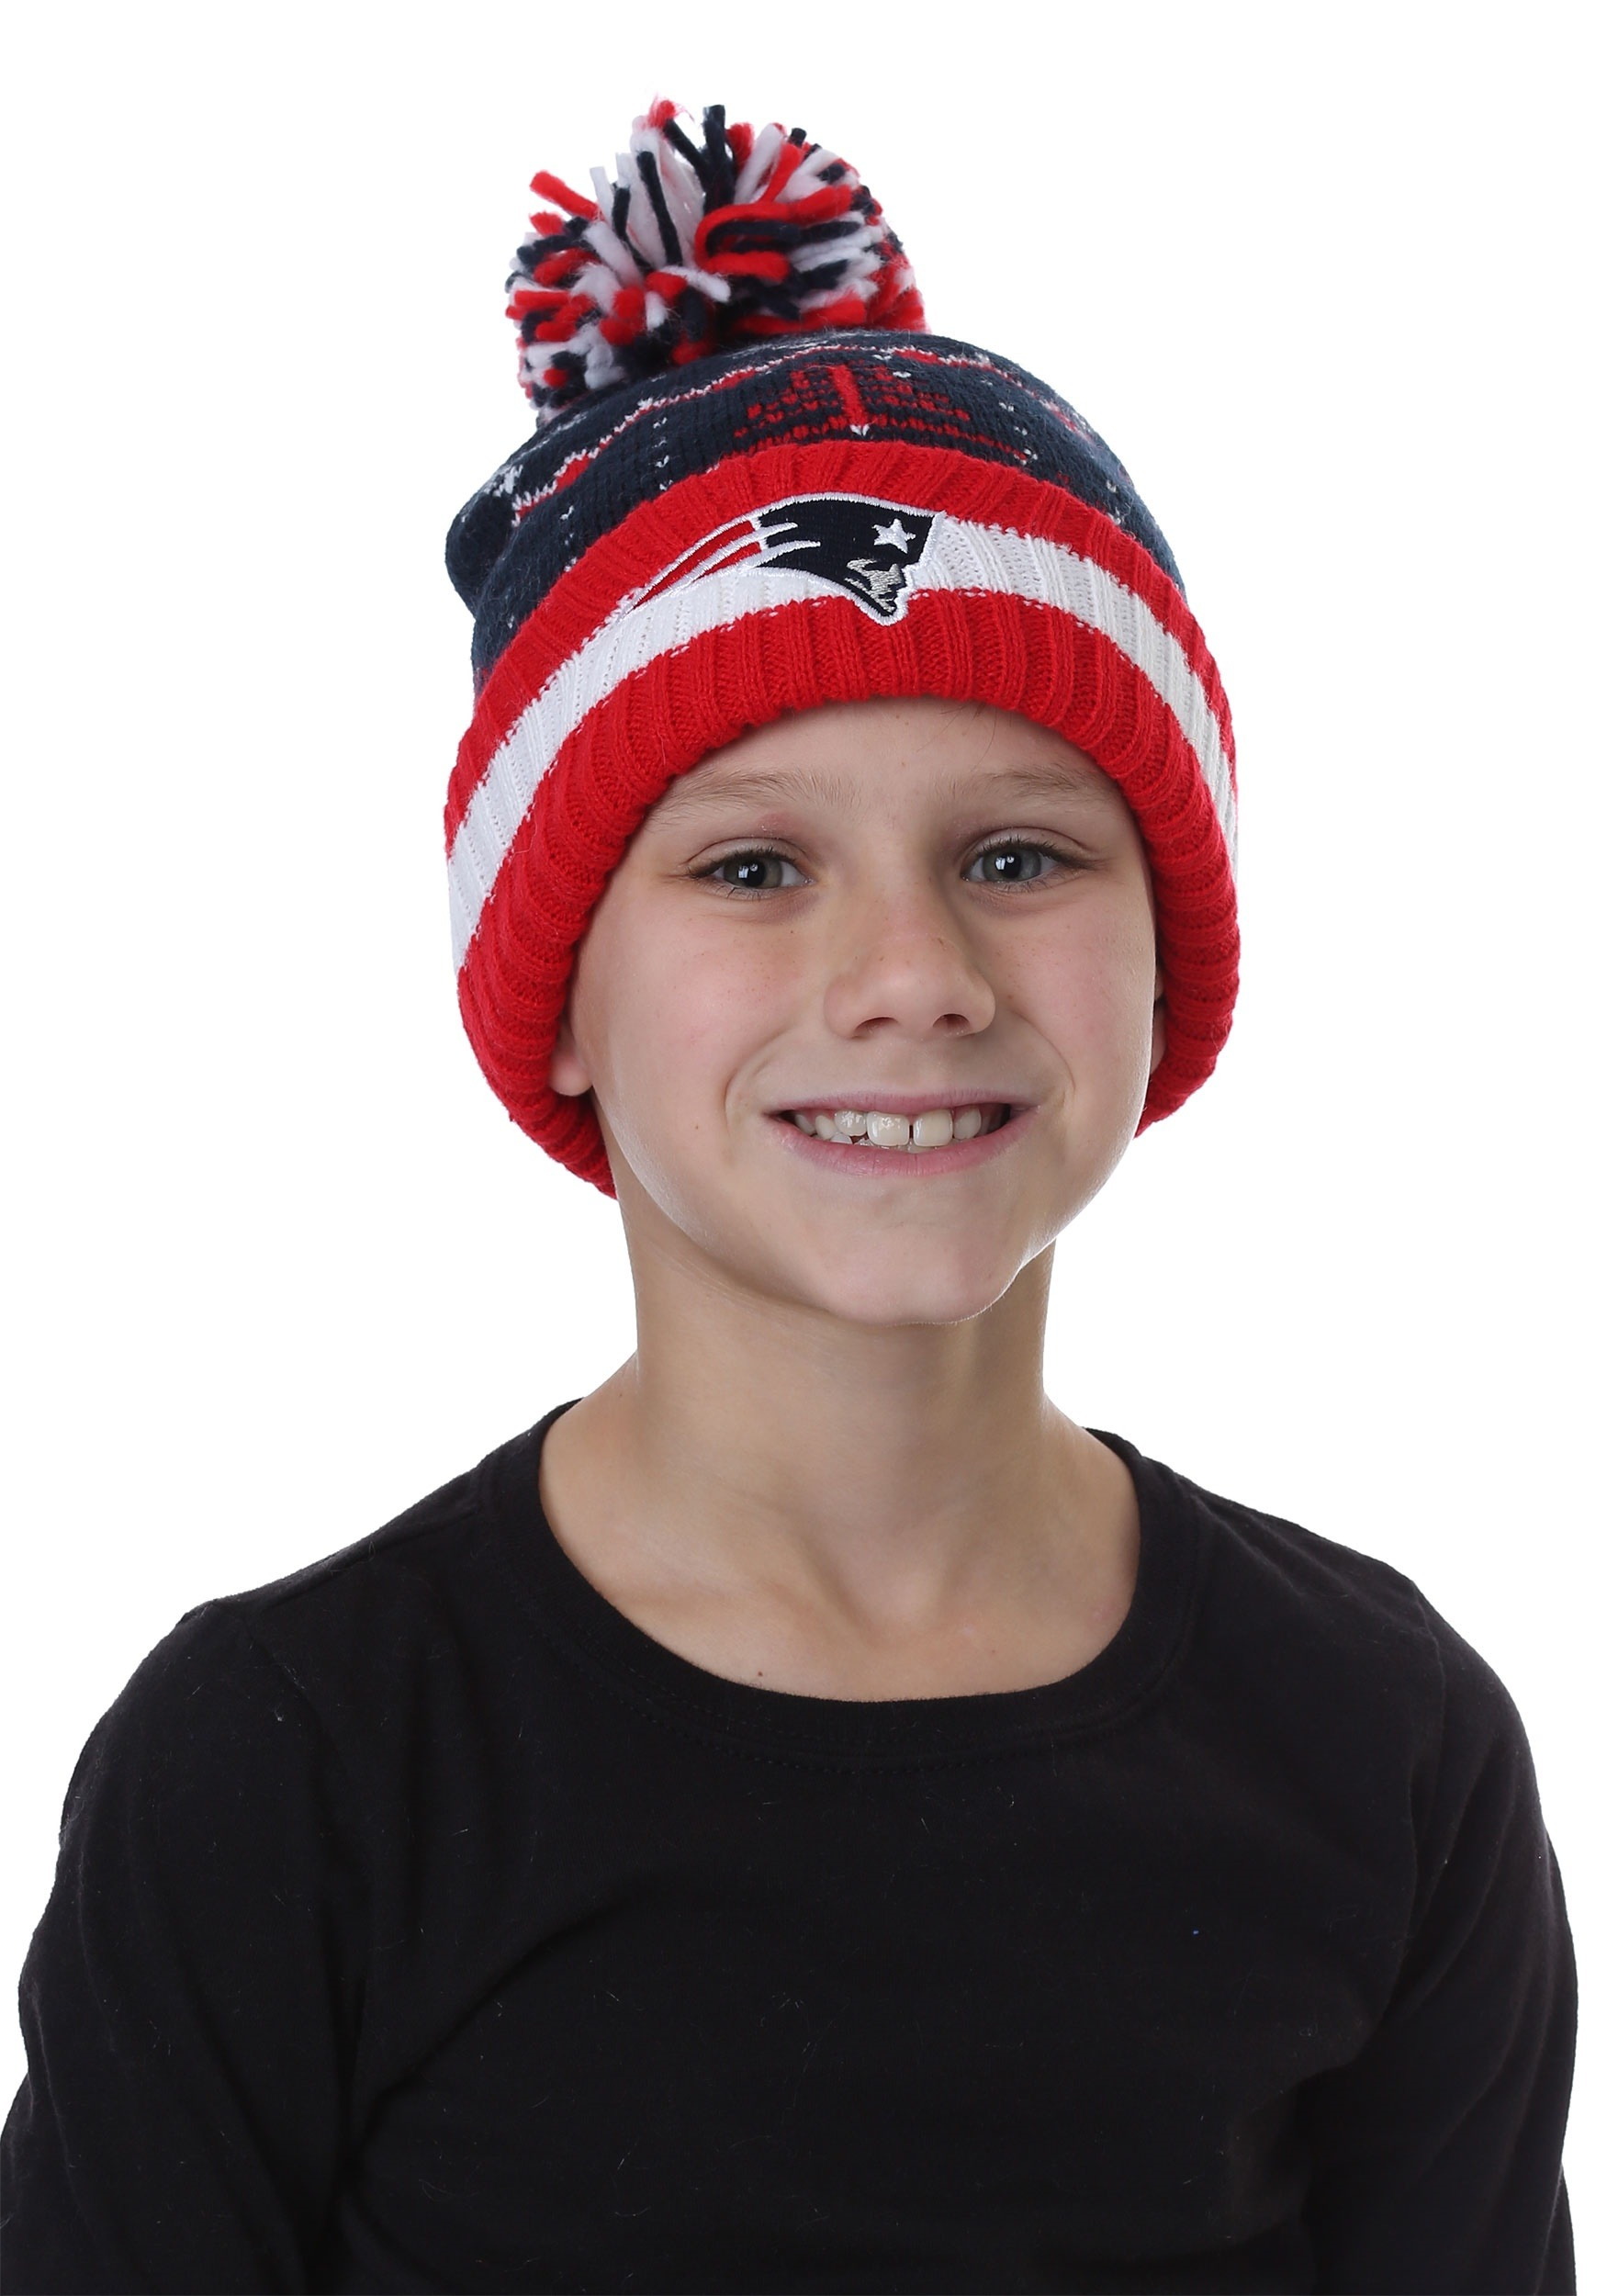 Patriots Cuffed Knit Hat with Pompom for Kids dda59d6a3